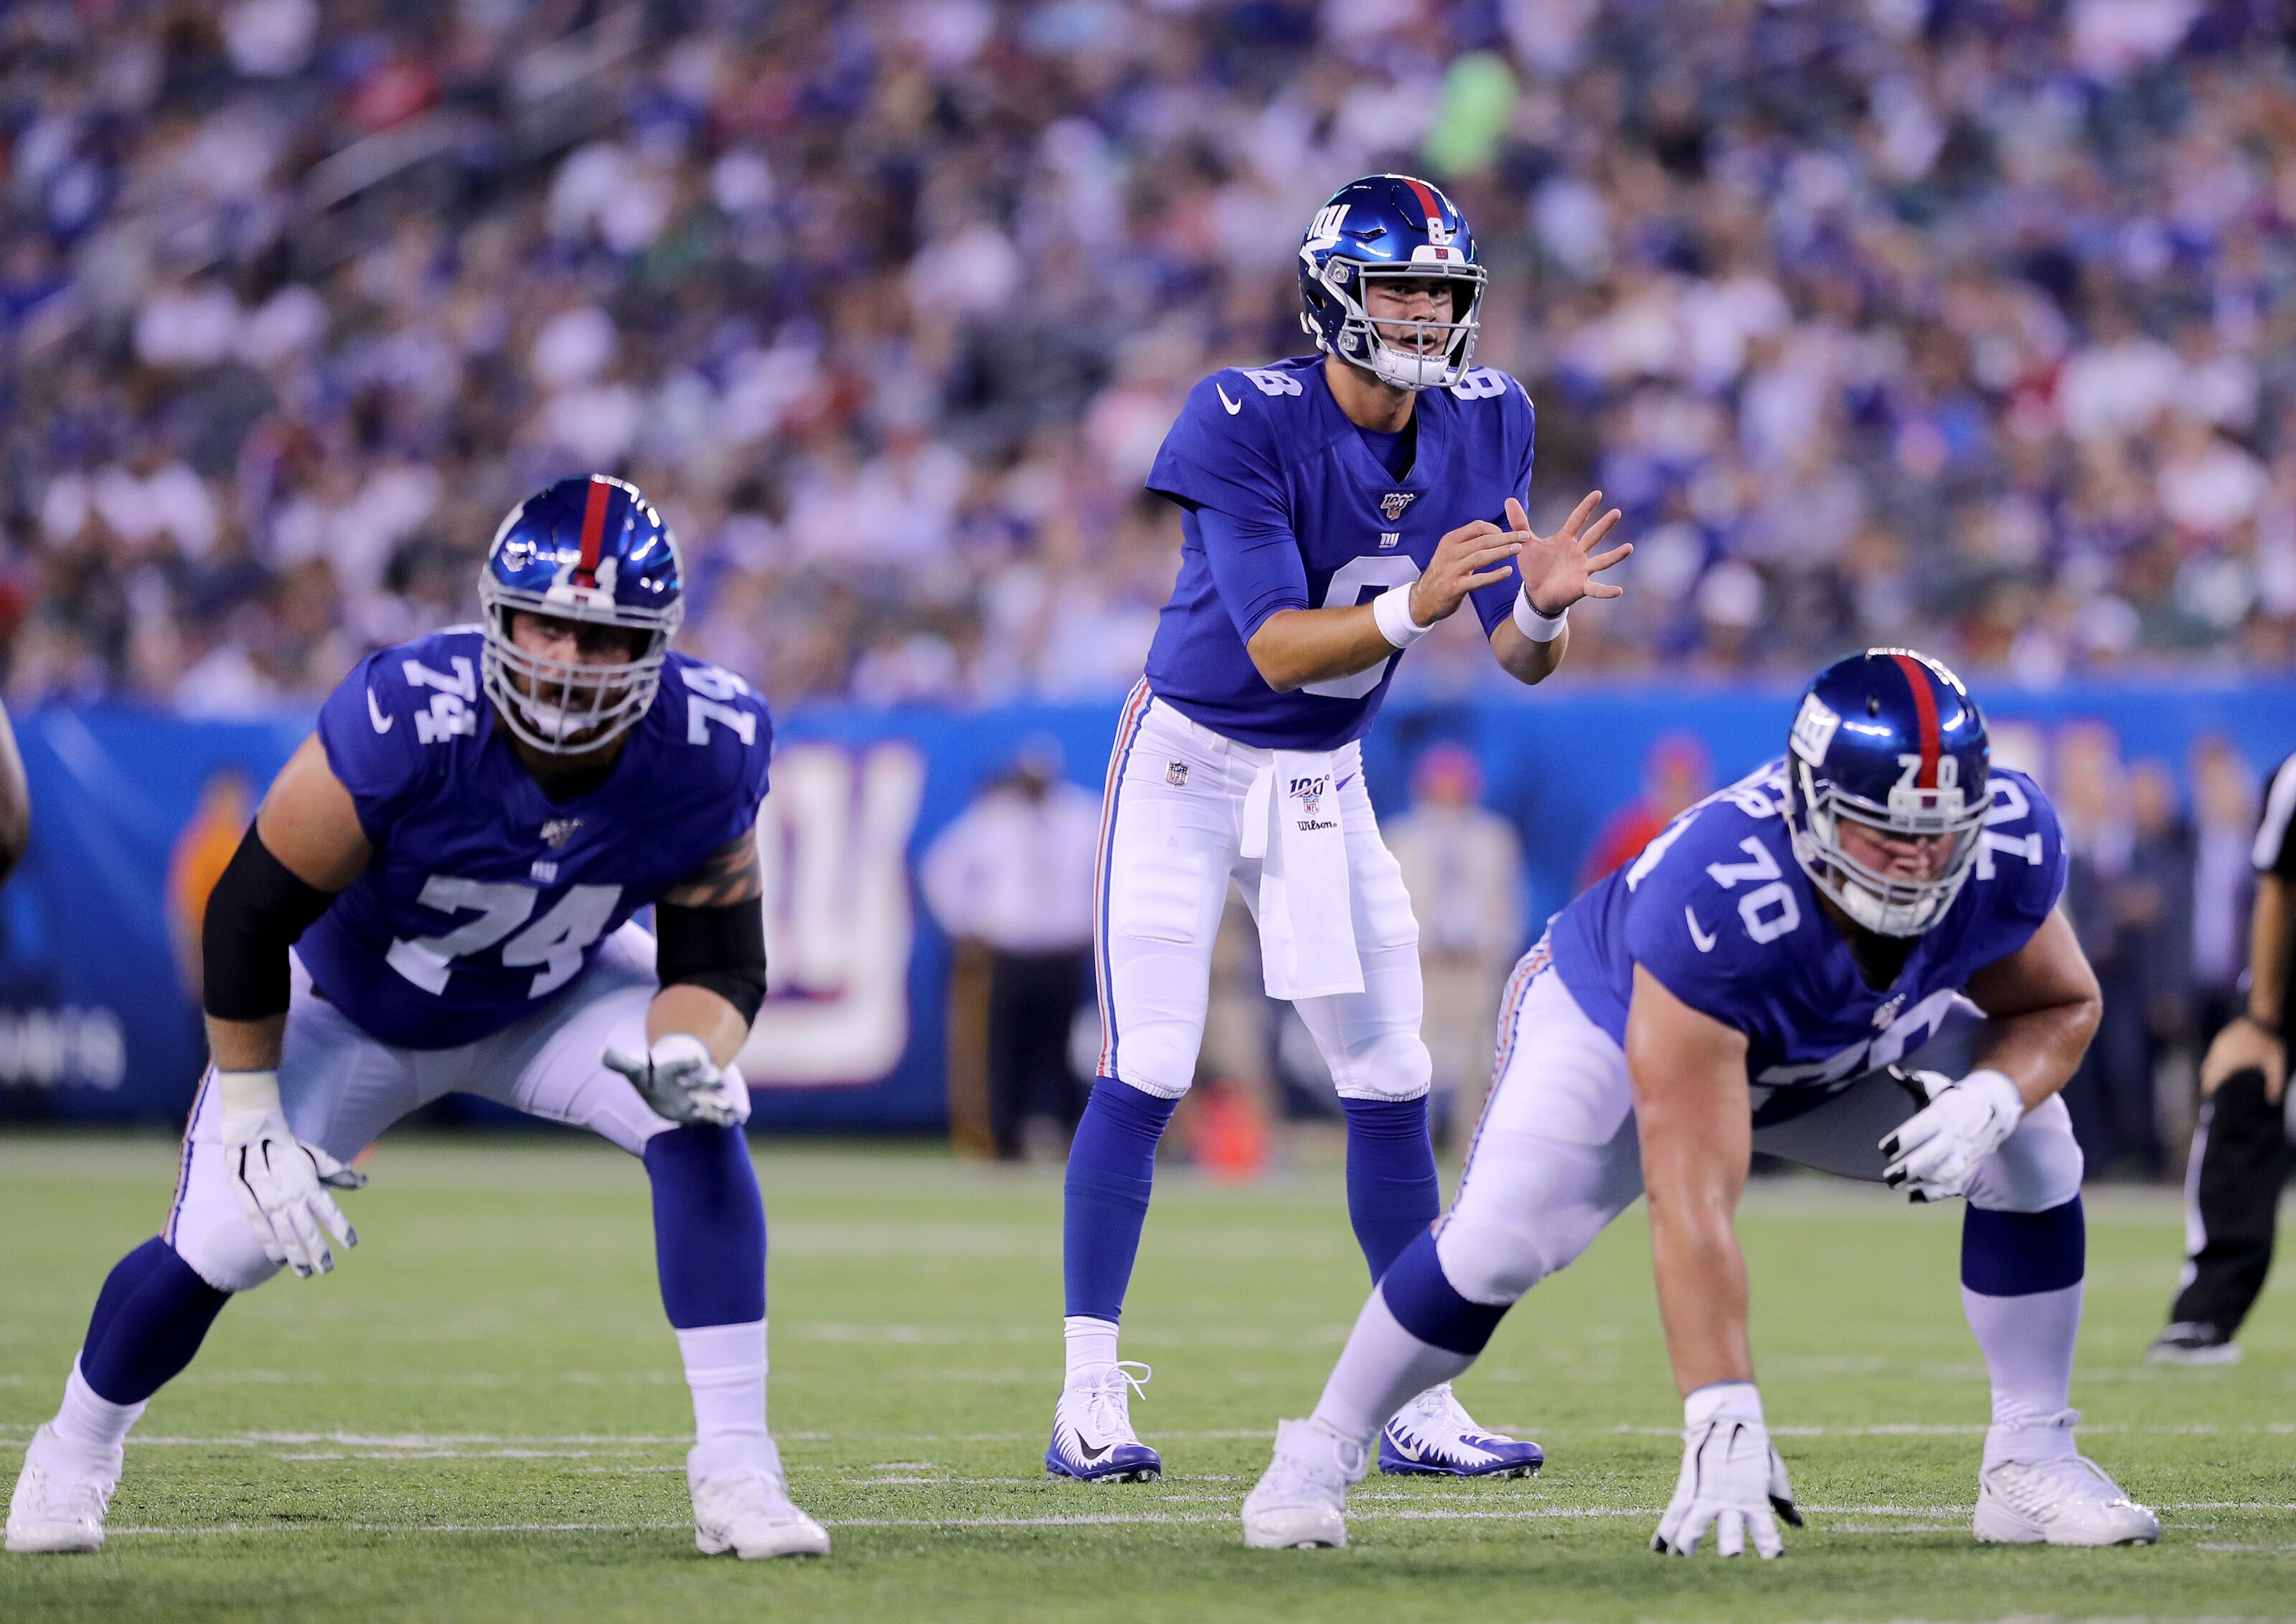 Let's have realistic expectations for Daniel Jones